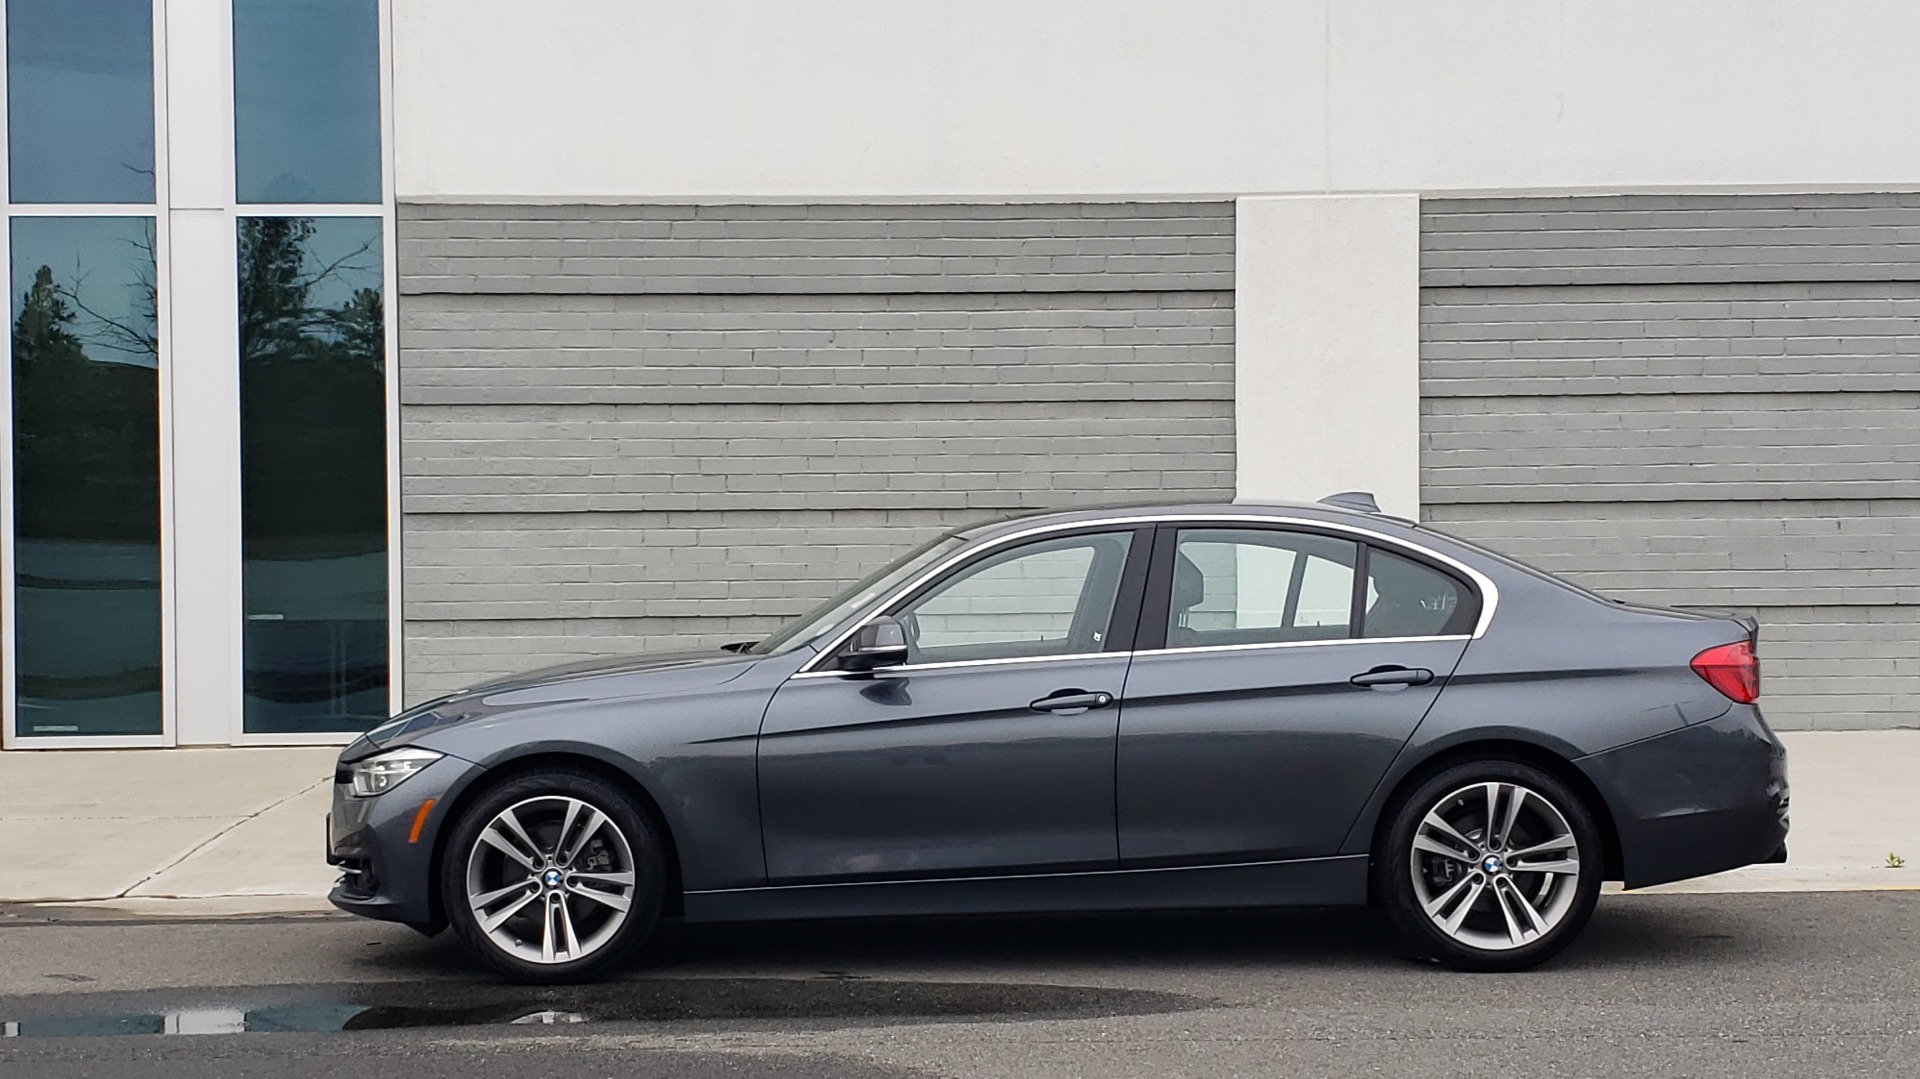 Used 2018 BMW 3 SERIES 330I XDRIVE PREMIUM / CONV PKG NAV / BLIND SPOT / HTD STS / REARVIEW for sale $22,695 at Formula Imports in Charlotte NC 28227 8